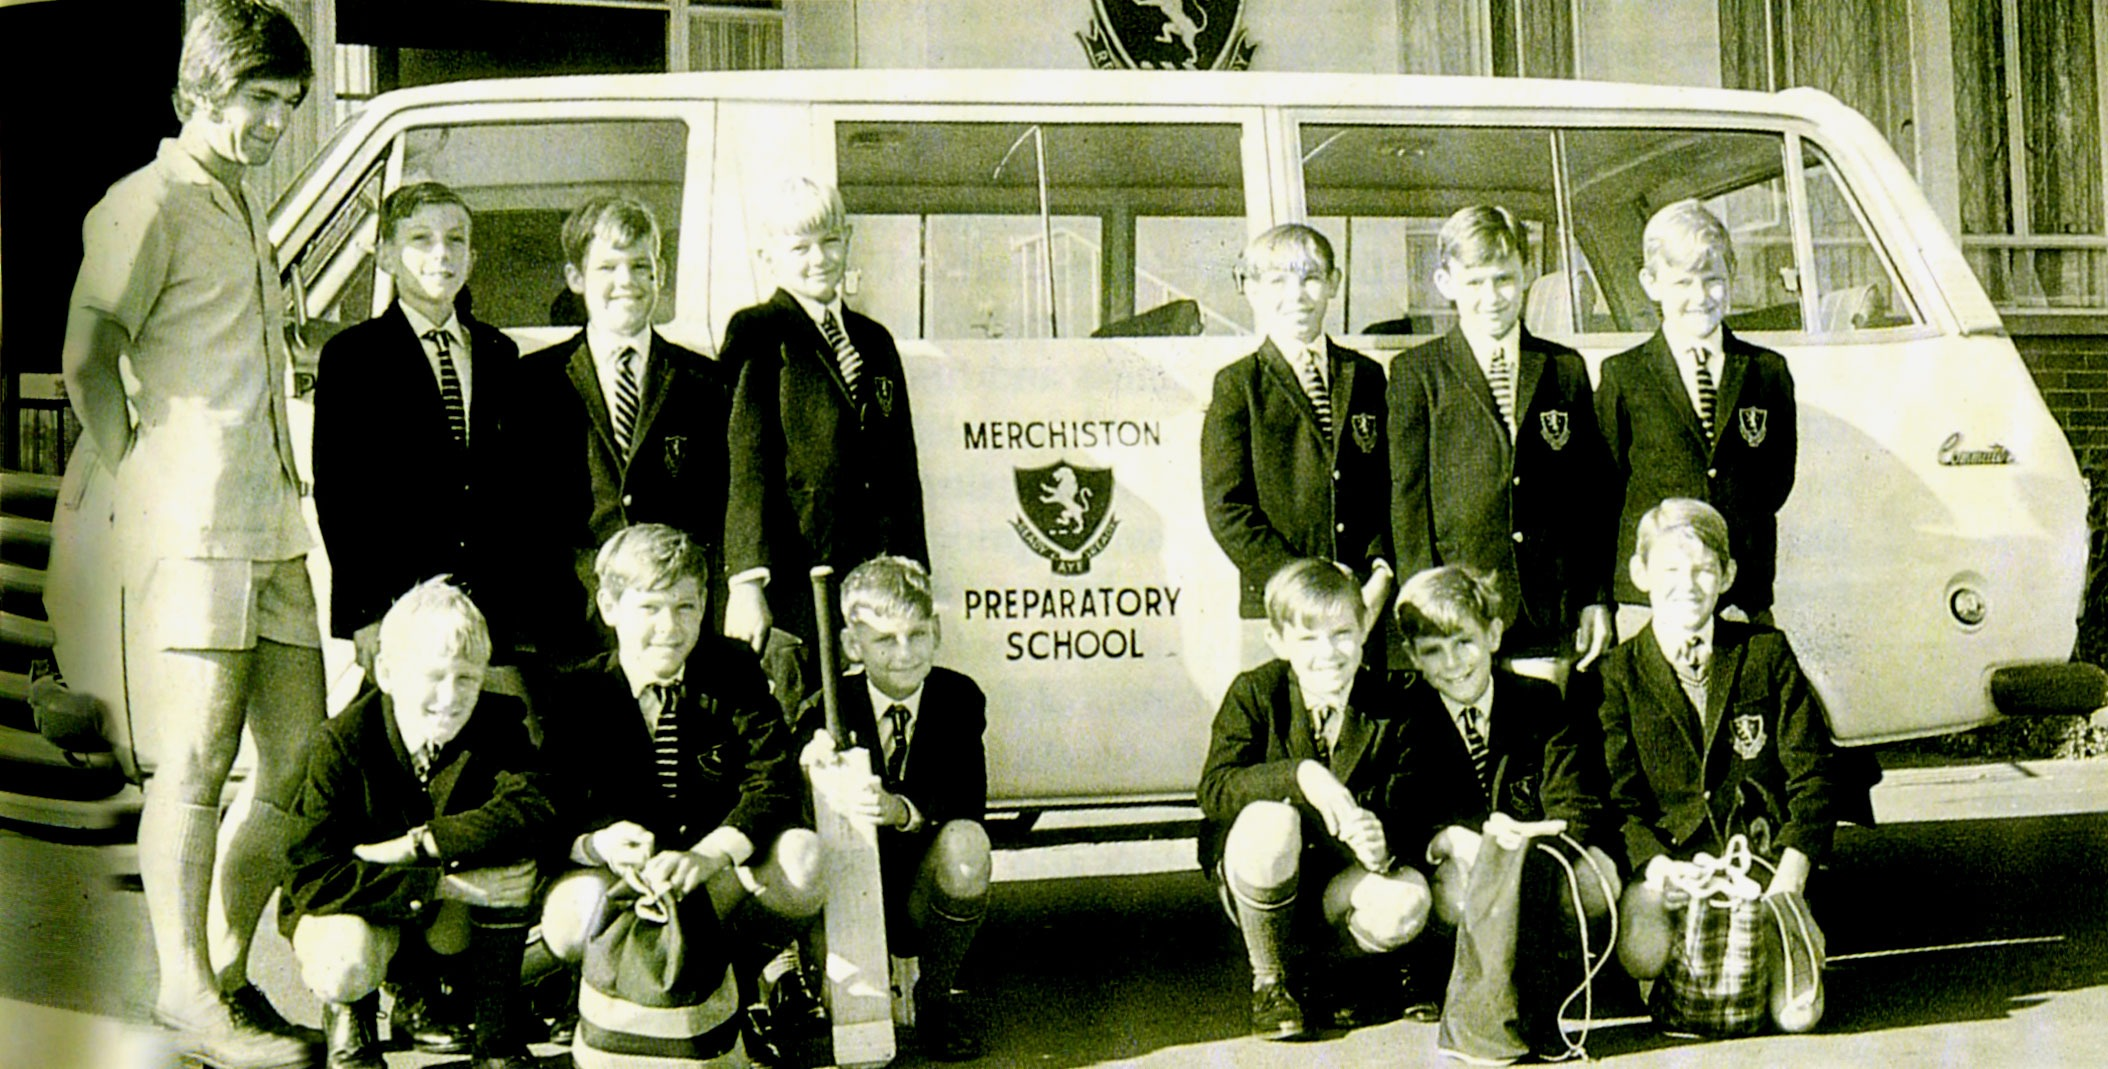 Cricketers about to head off in the school bus